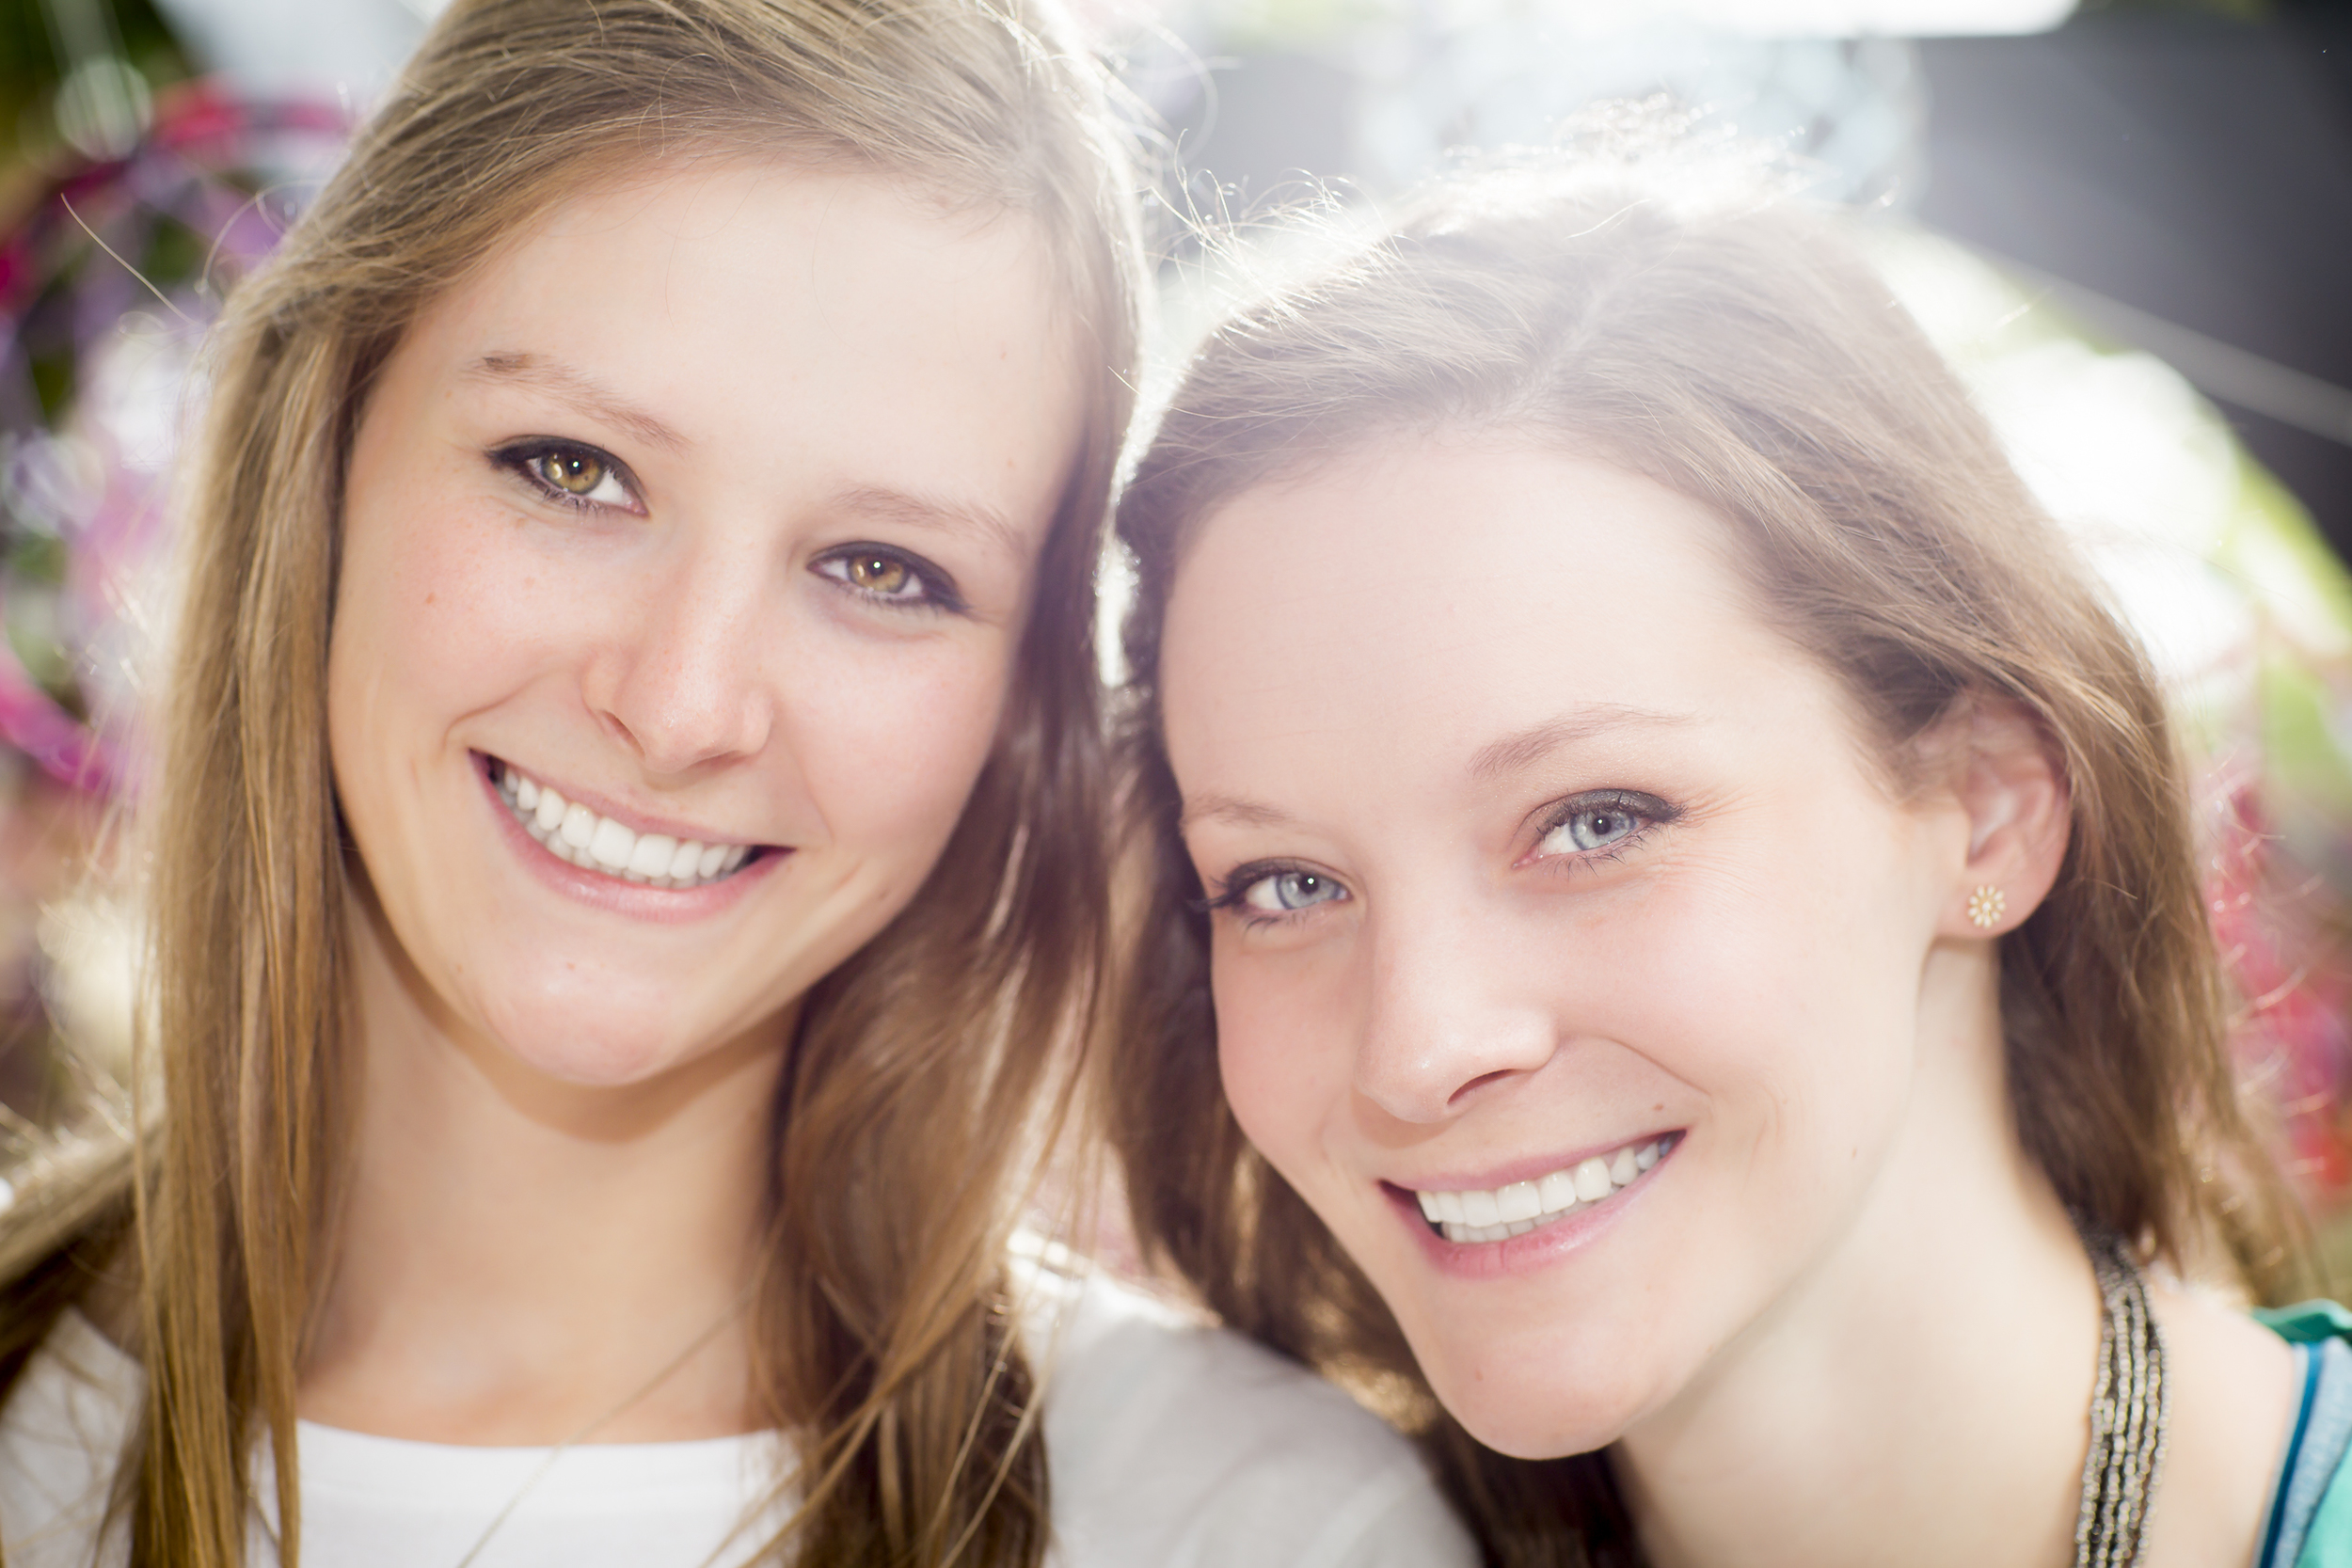 35 2 sisters family portrait outdoor session vibrant dream catchers up close.jpg